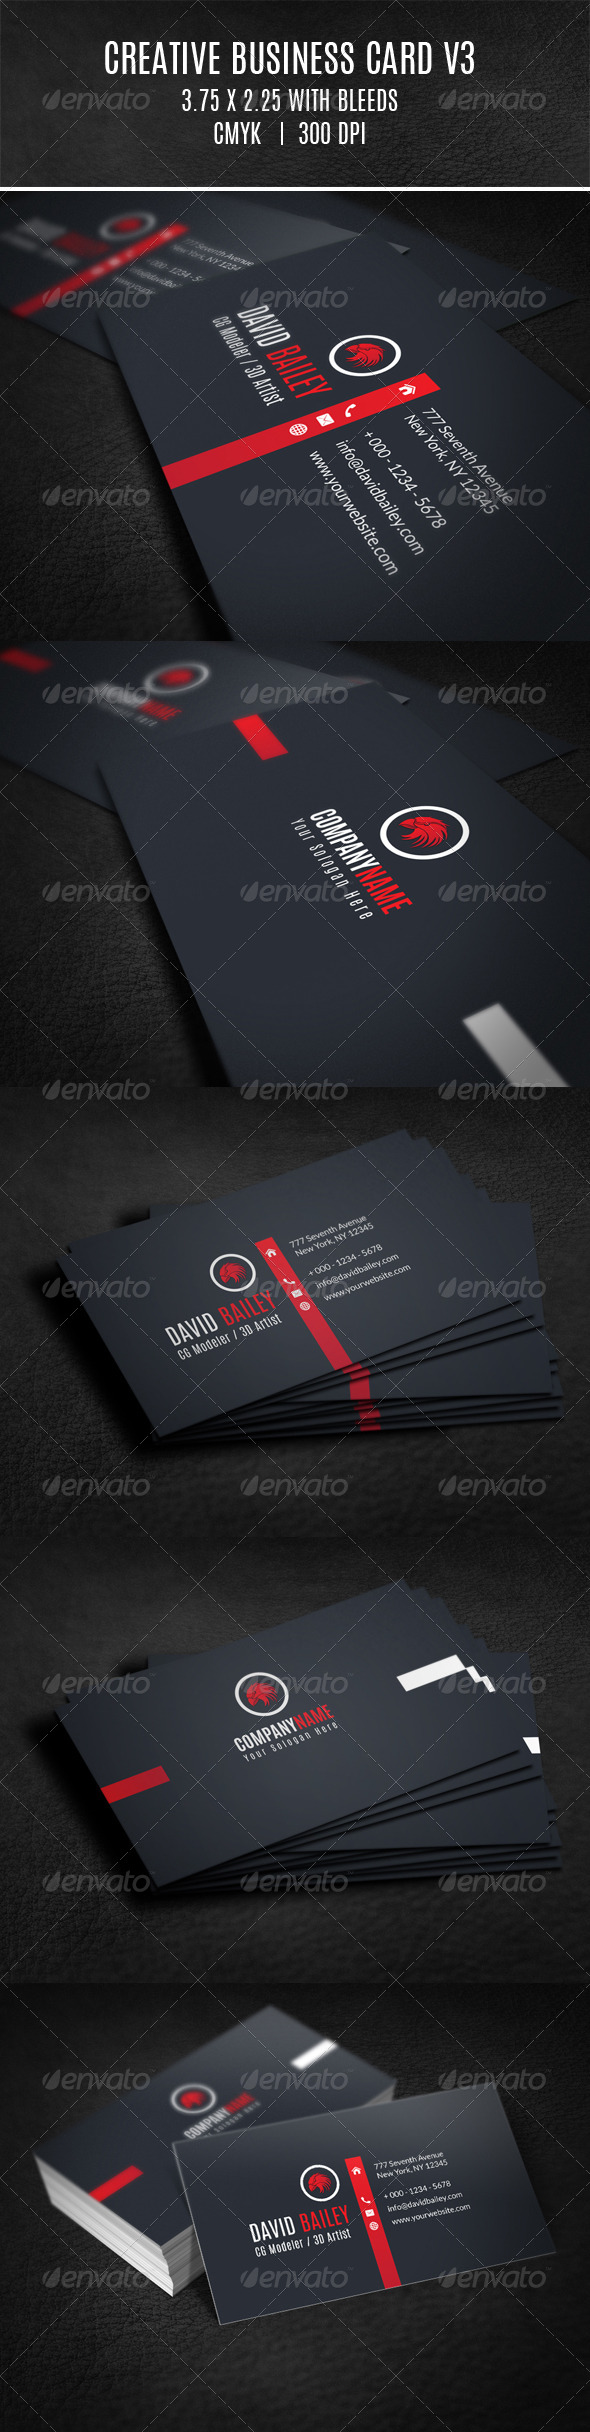 GraphicRiver Creative Business Card V3 8020198